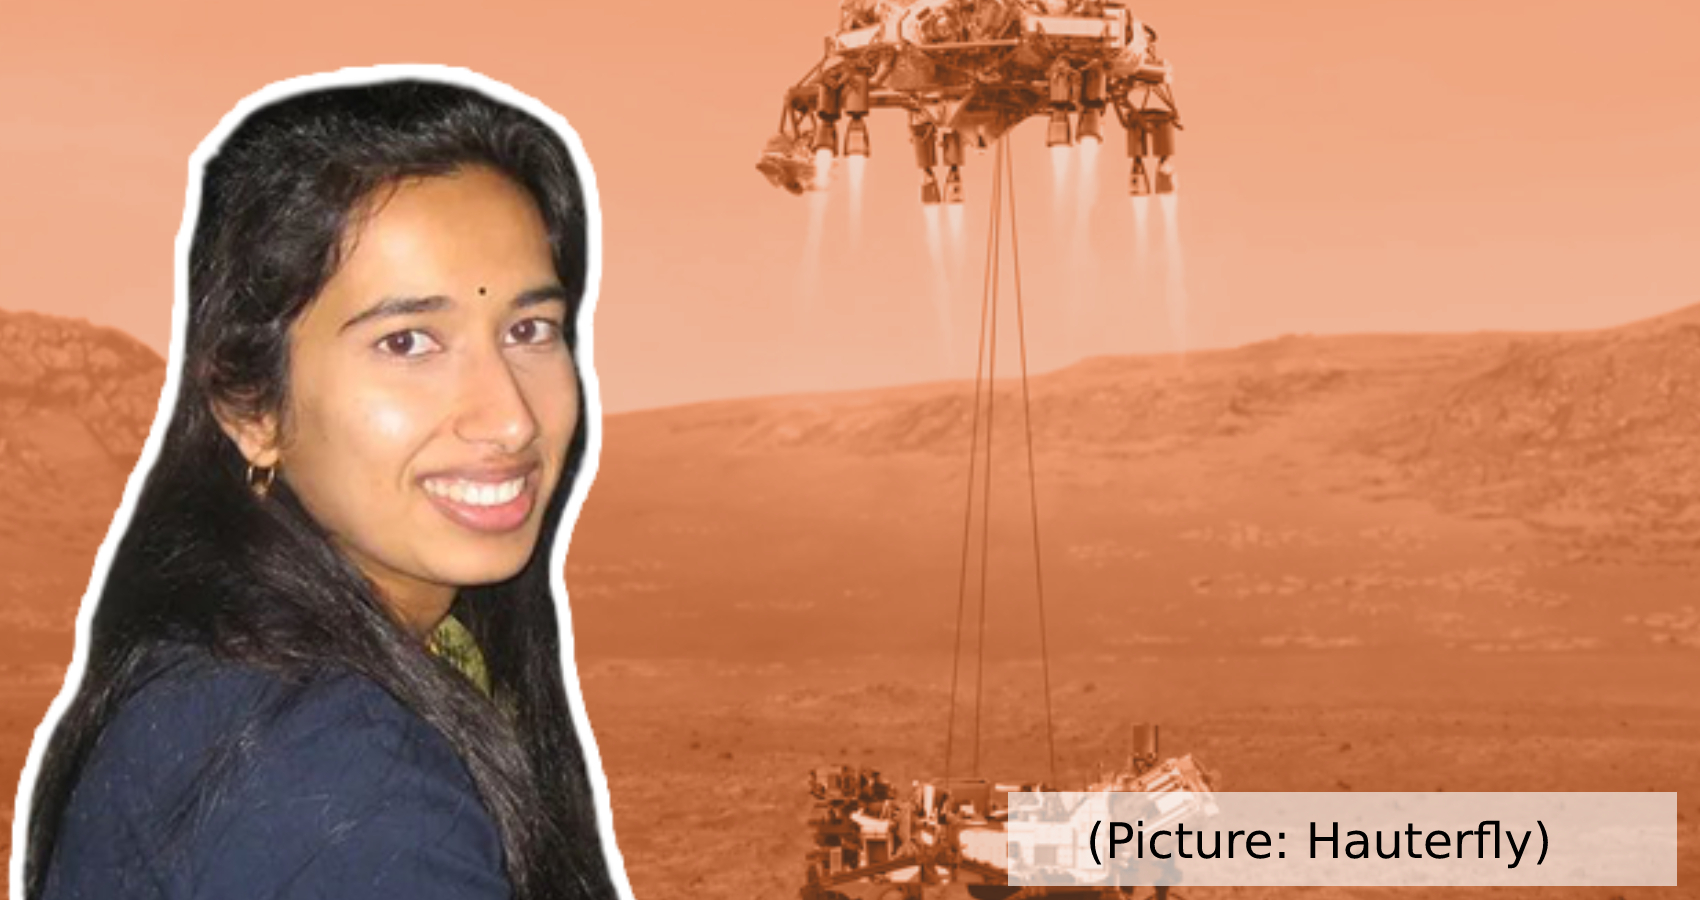 Swati Mohan At NASA's Perseverance Rover Mission